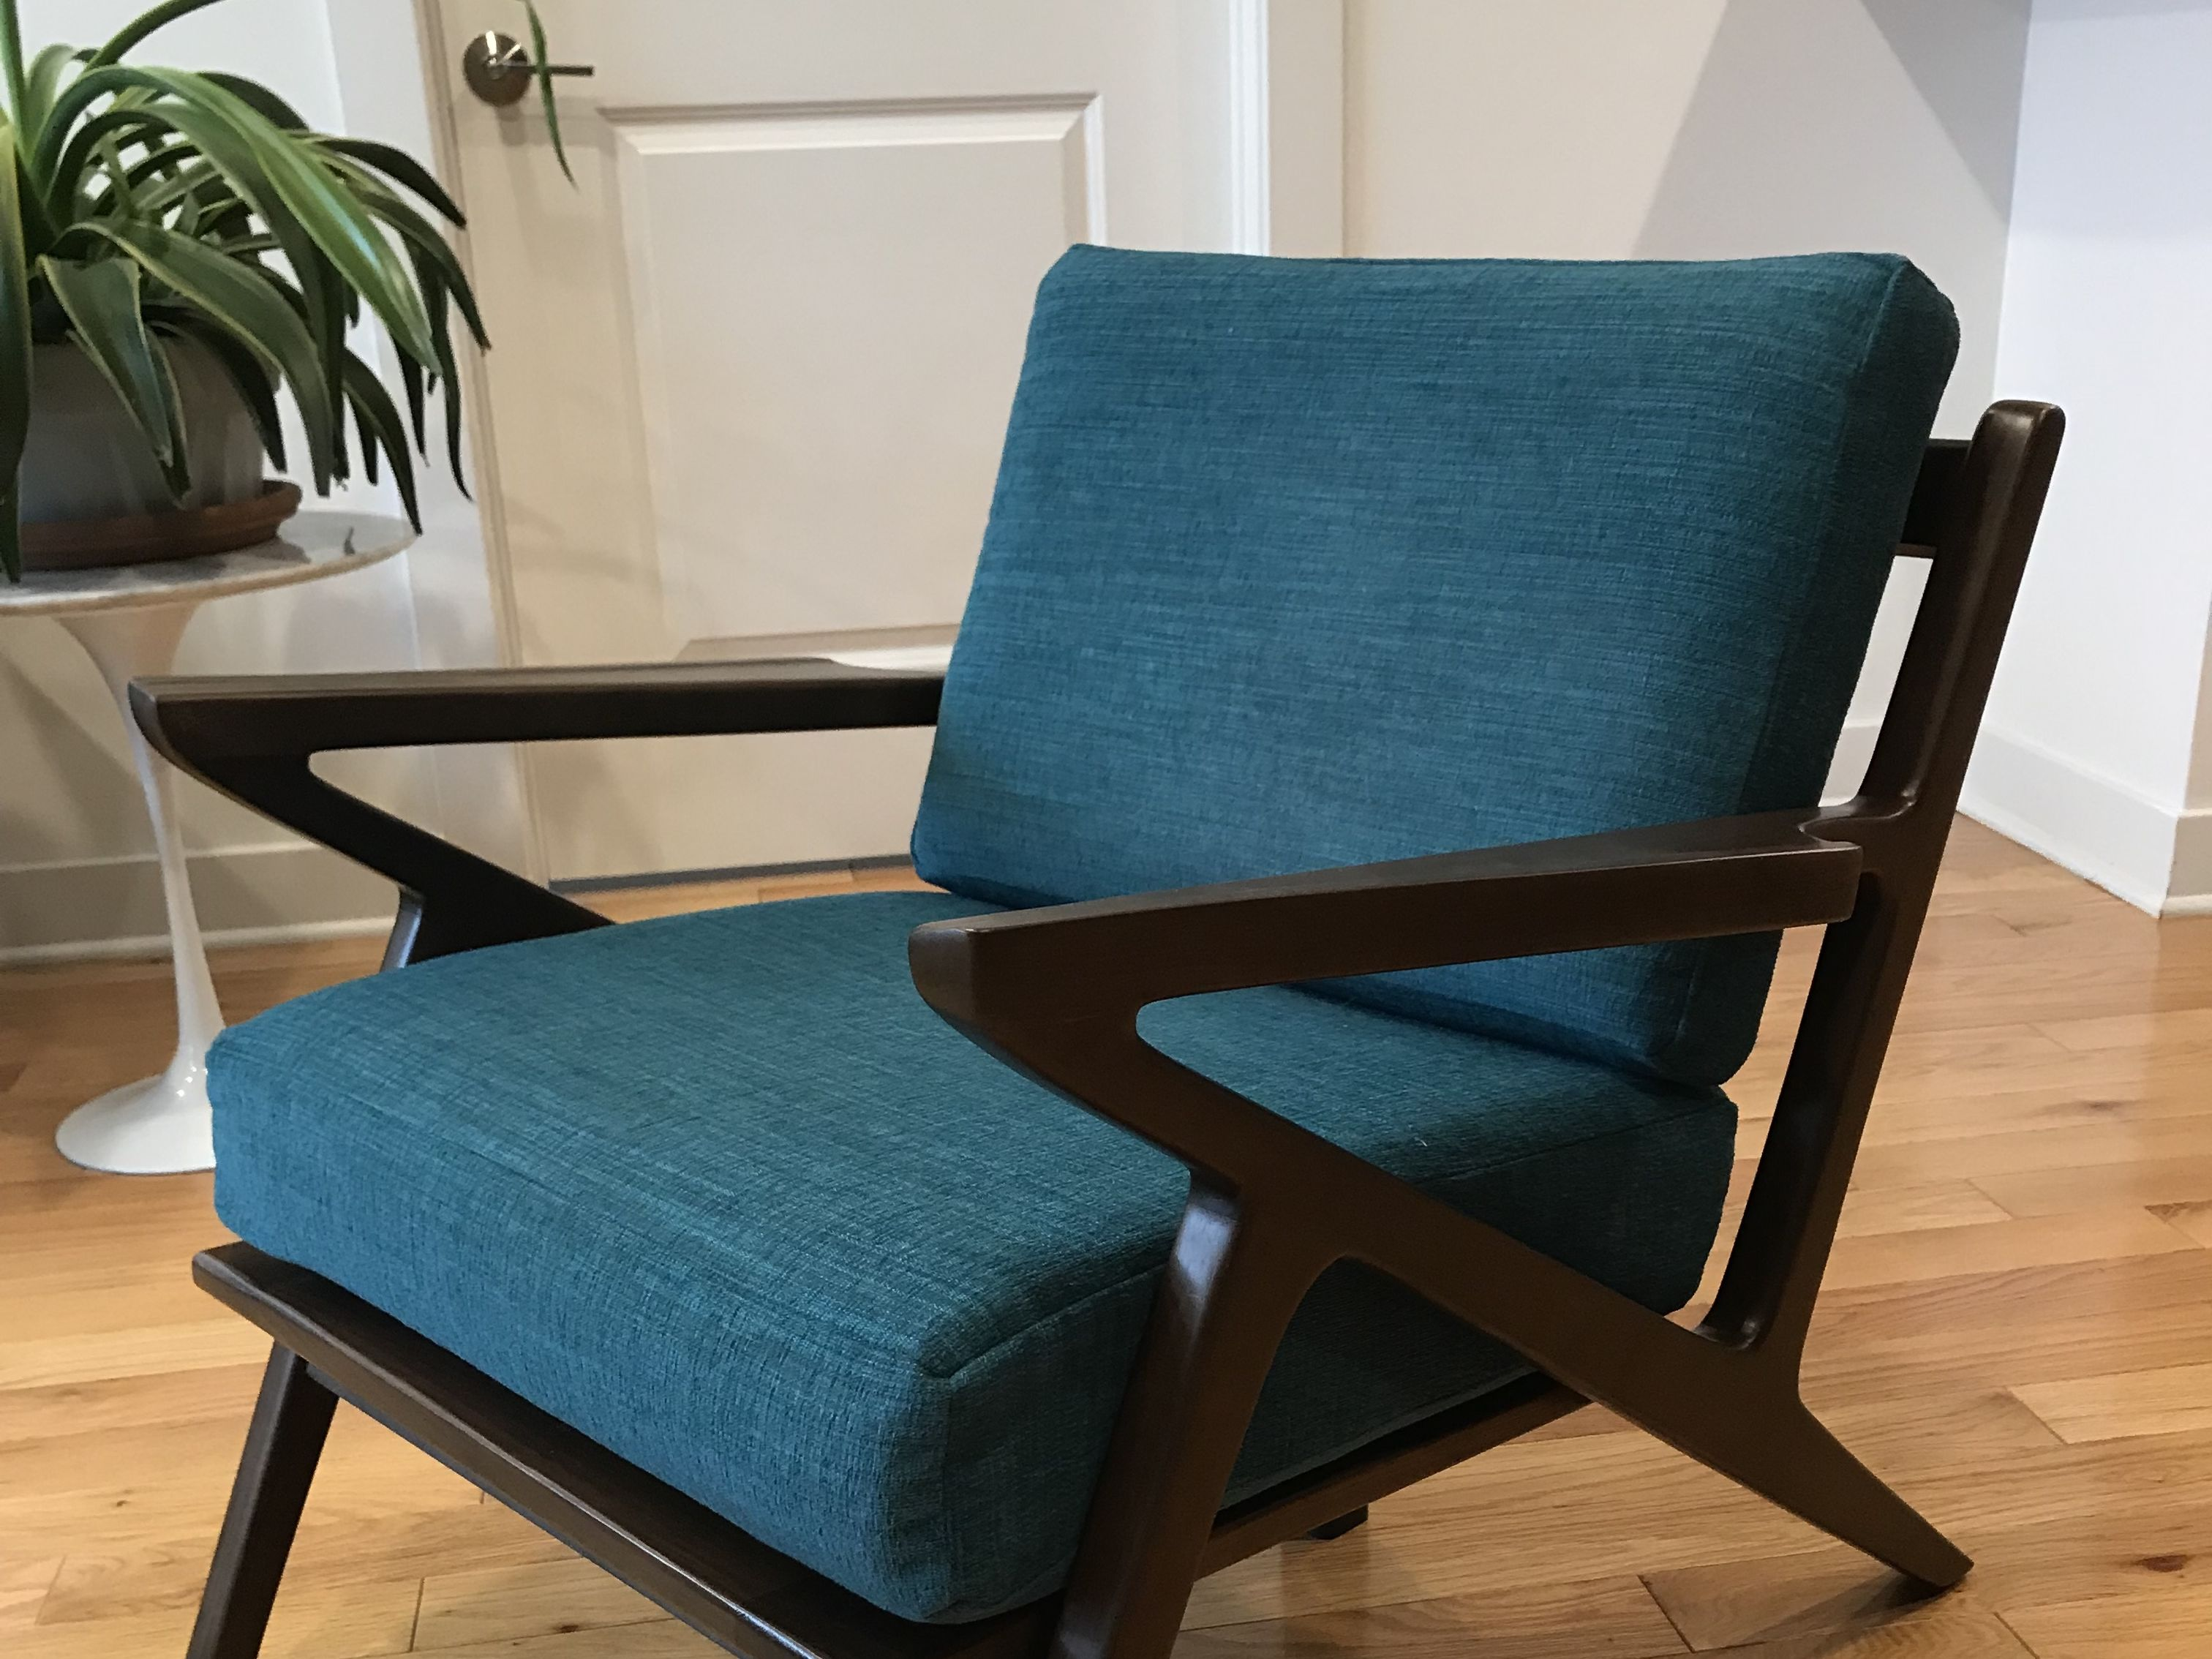 Astounding Mid Century Modern Z Lounge Chair Solid Walnut Caraccident5 Cool Chair Designs And Ideas Caraccident5Info